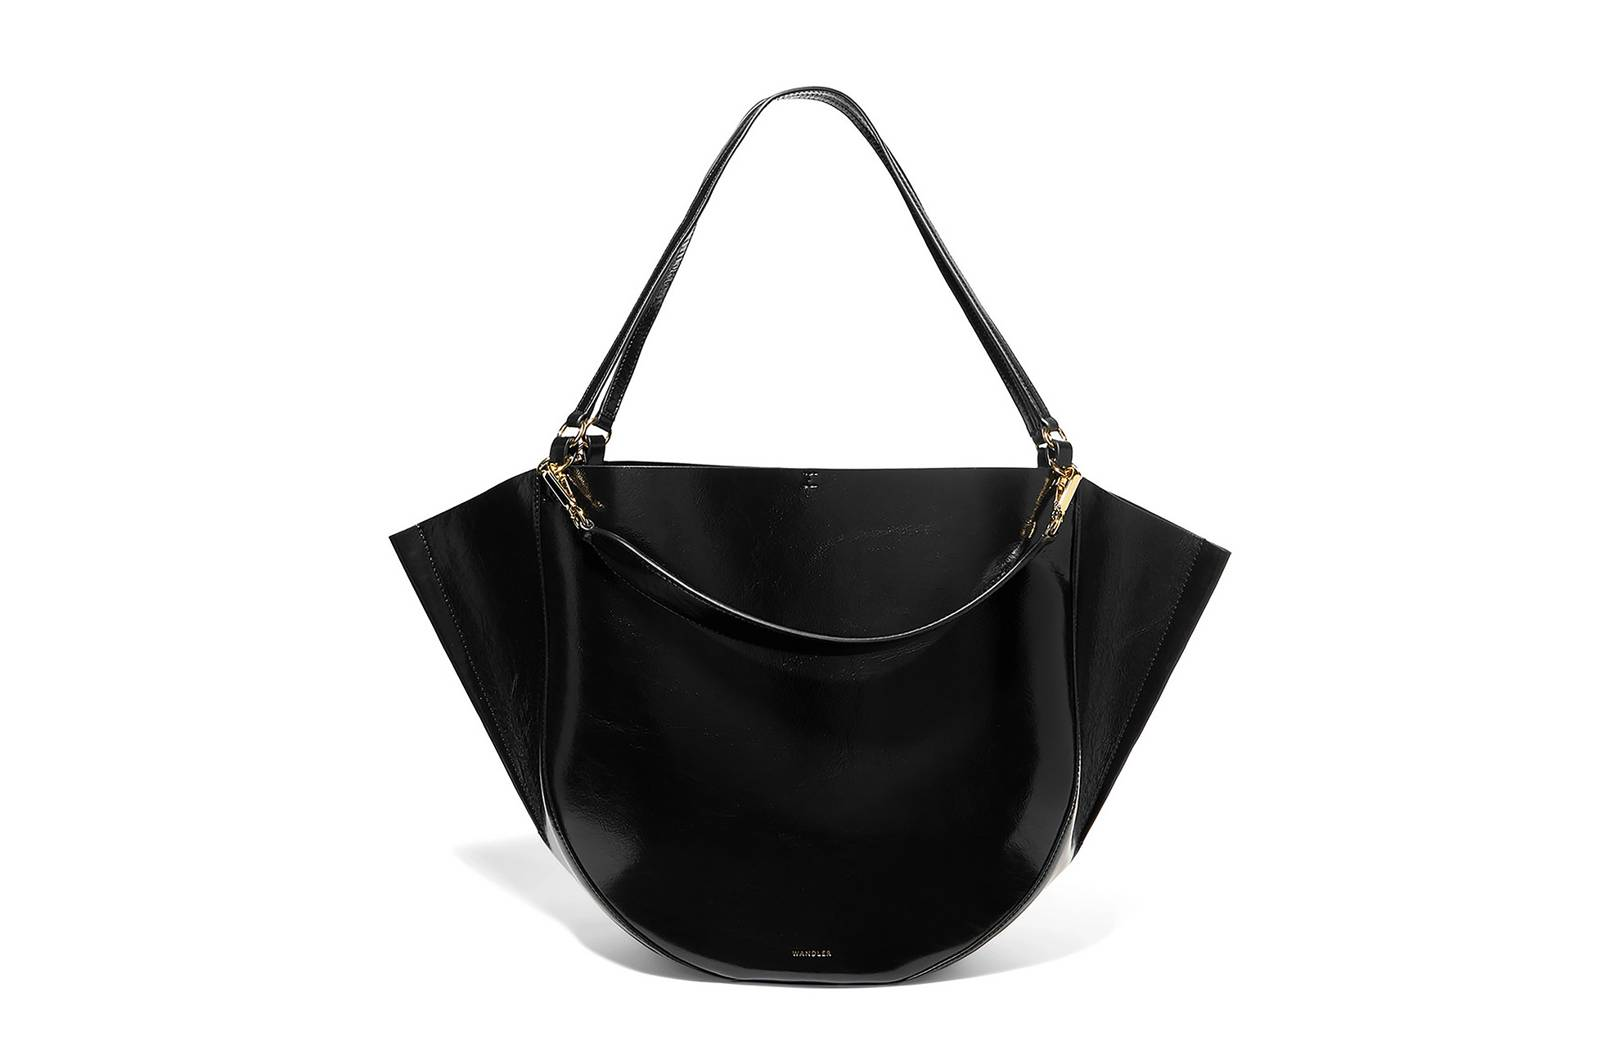 b9a2b246bfdcaa Black Handbags | The Best Black Bags You Can Wear With Anything | British  Vogue